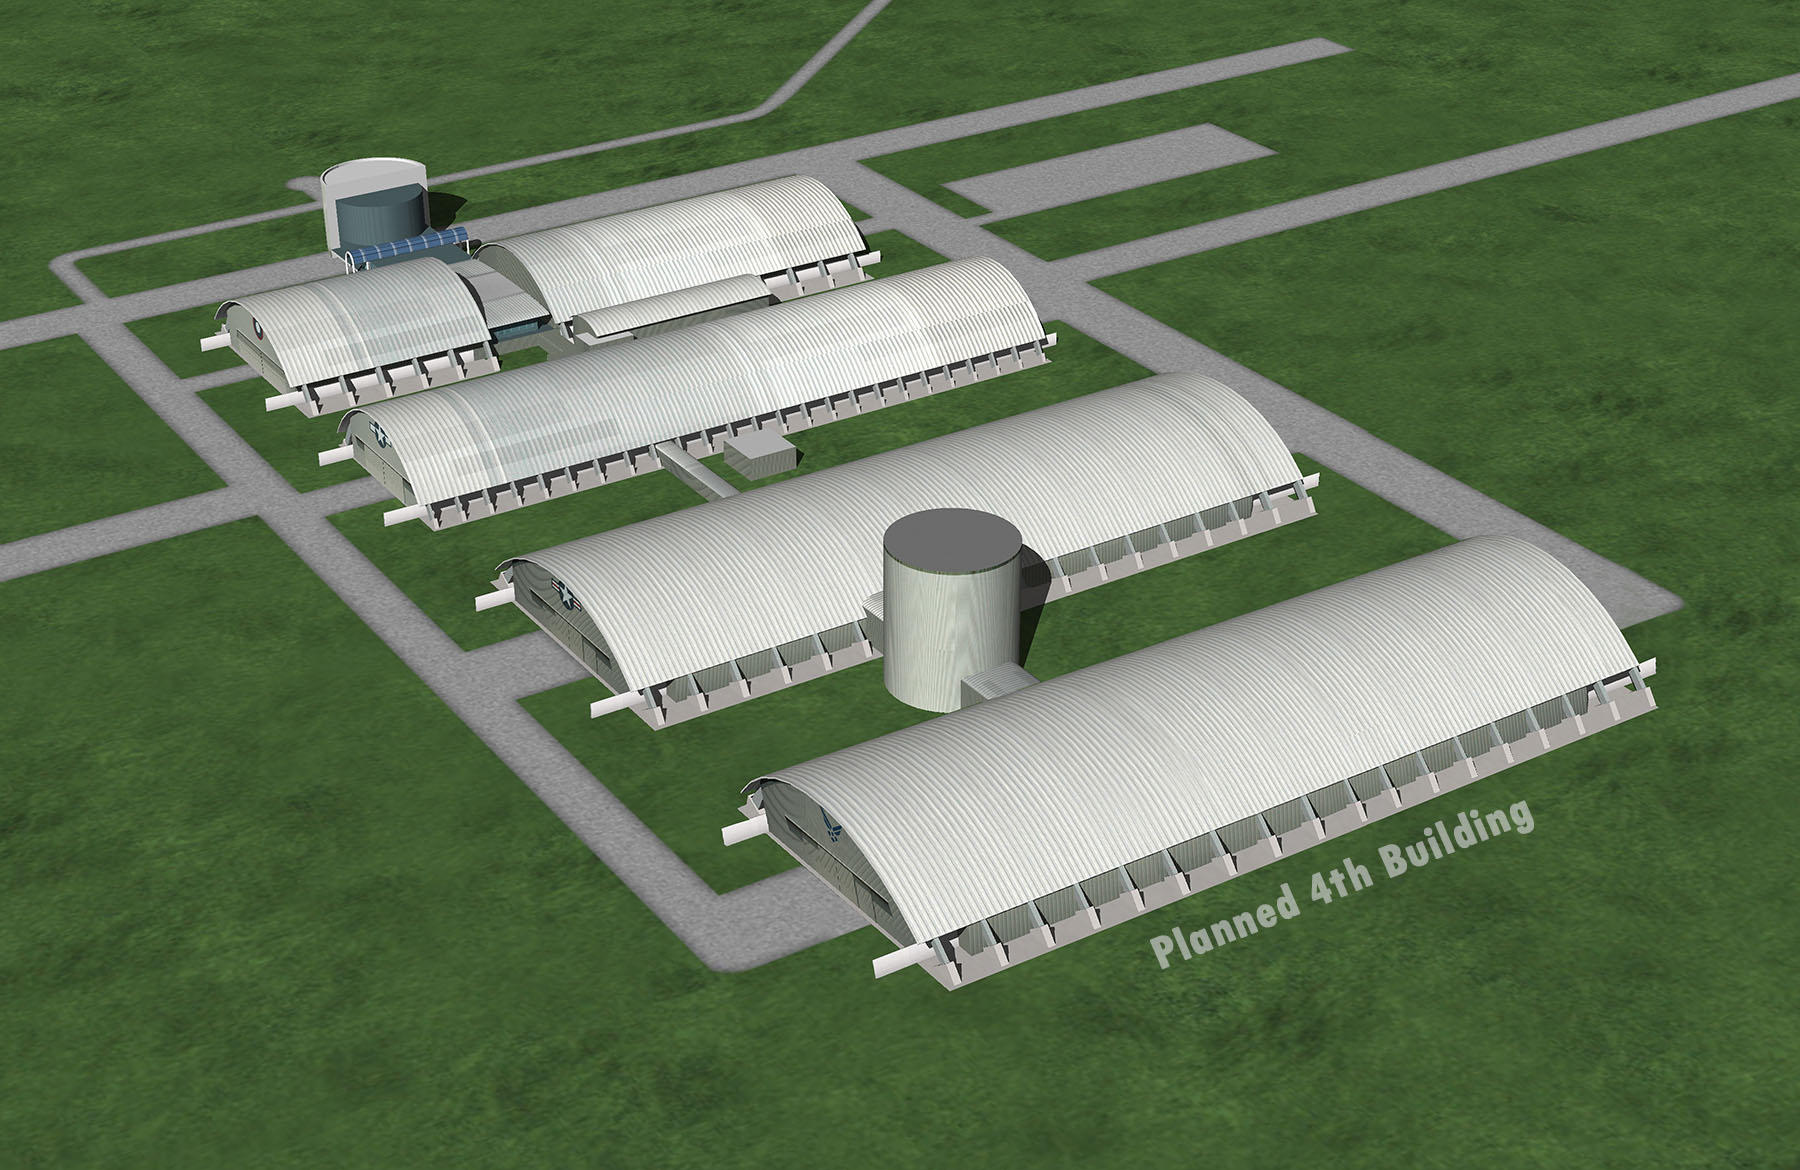 Air force museum releases plan for new building wyso for House plans with future expansion